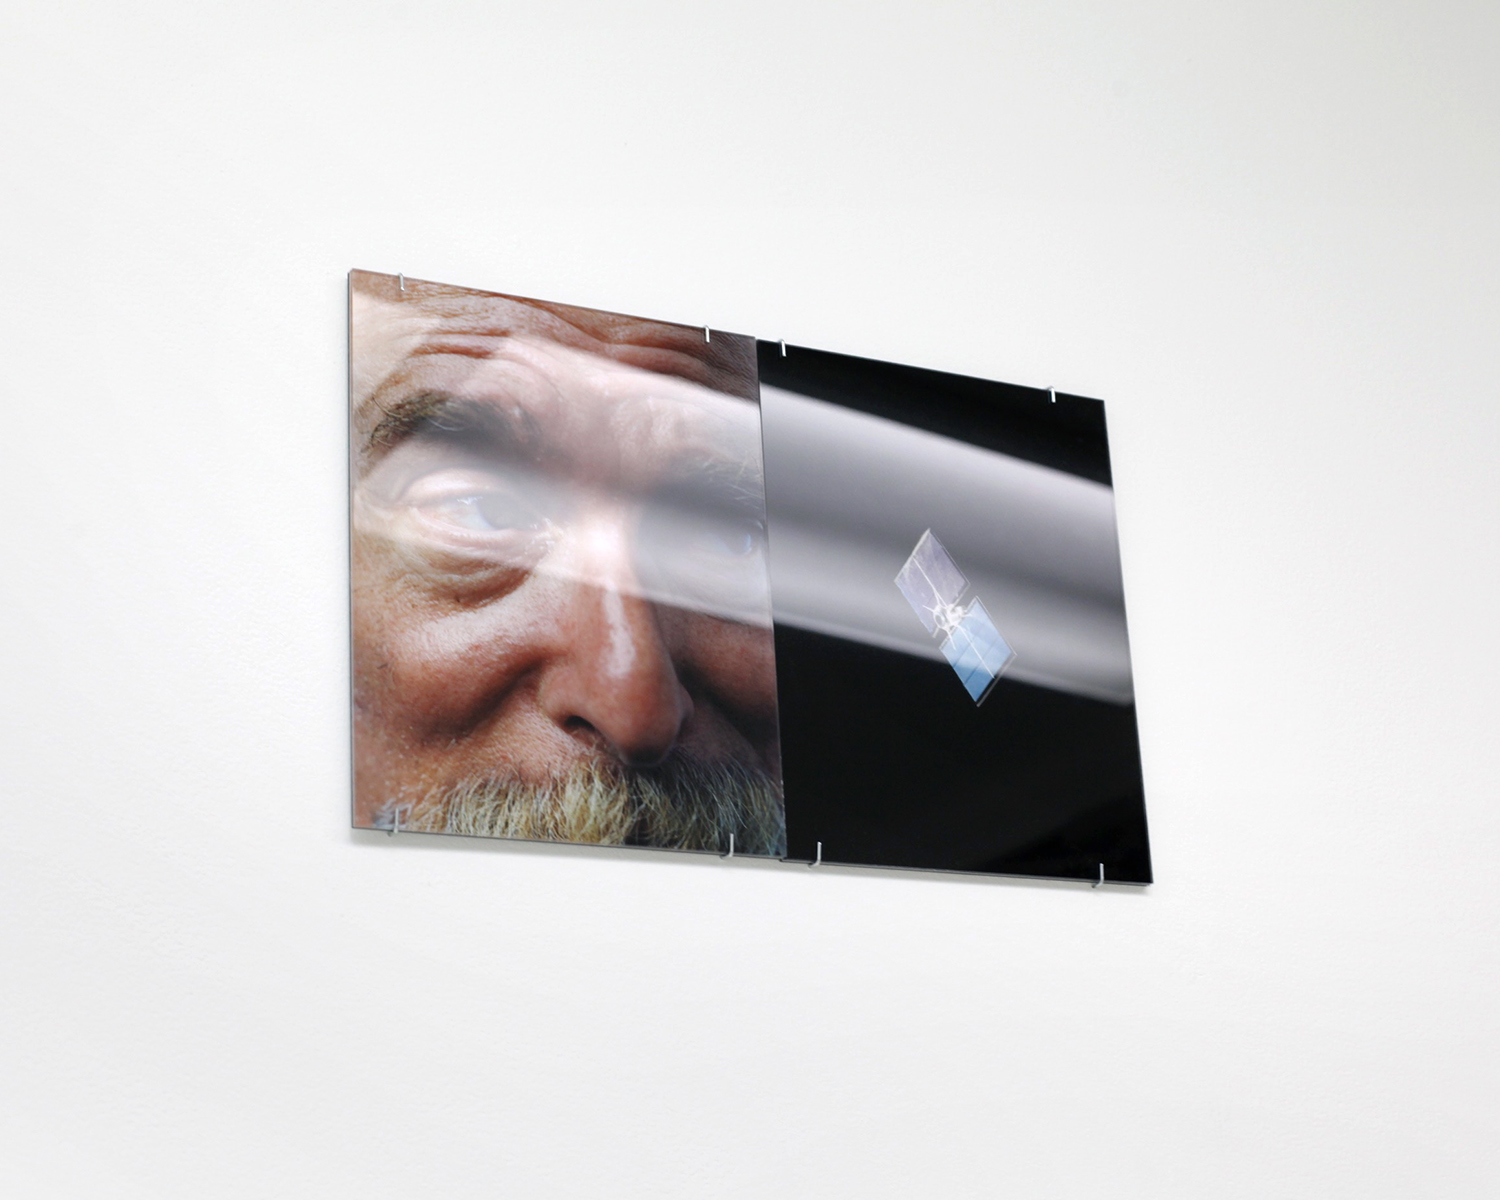 Dreaming Dave , 2015 /  RZY-8223 , 2015, Archival Pigment Print